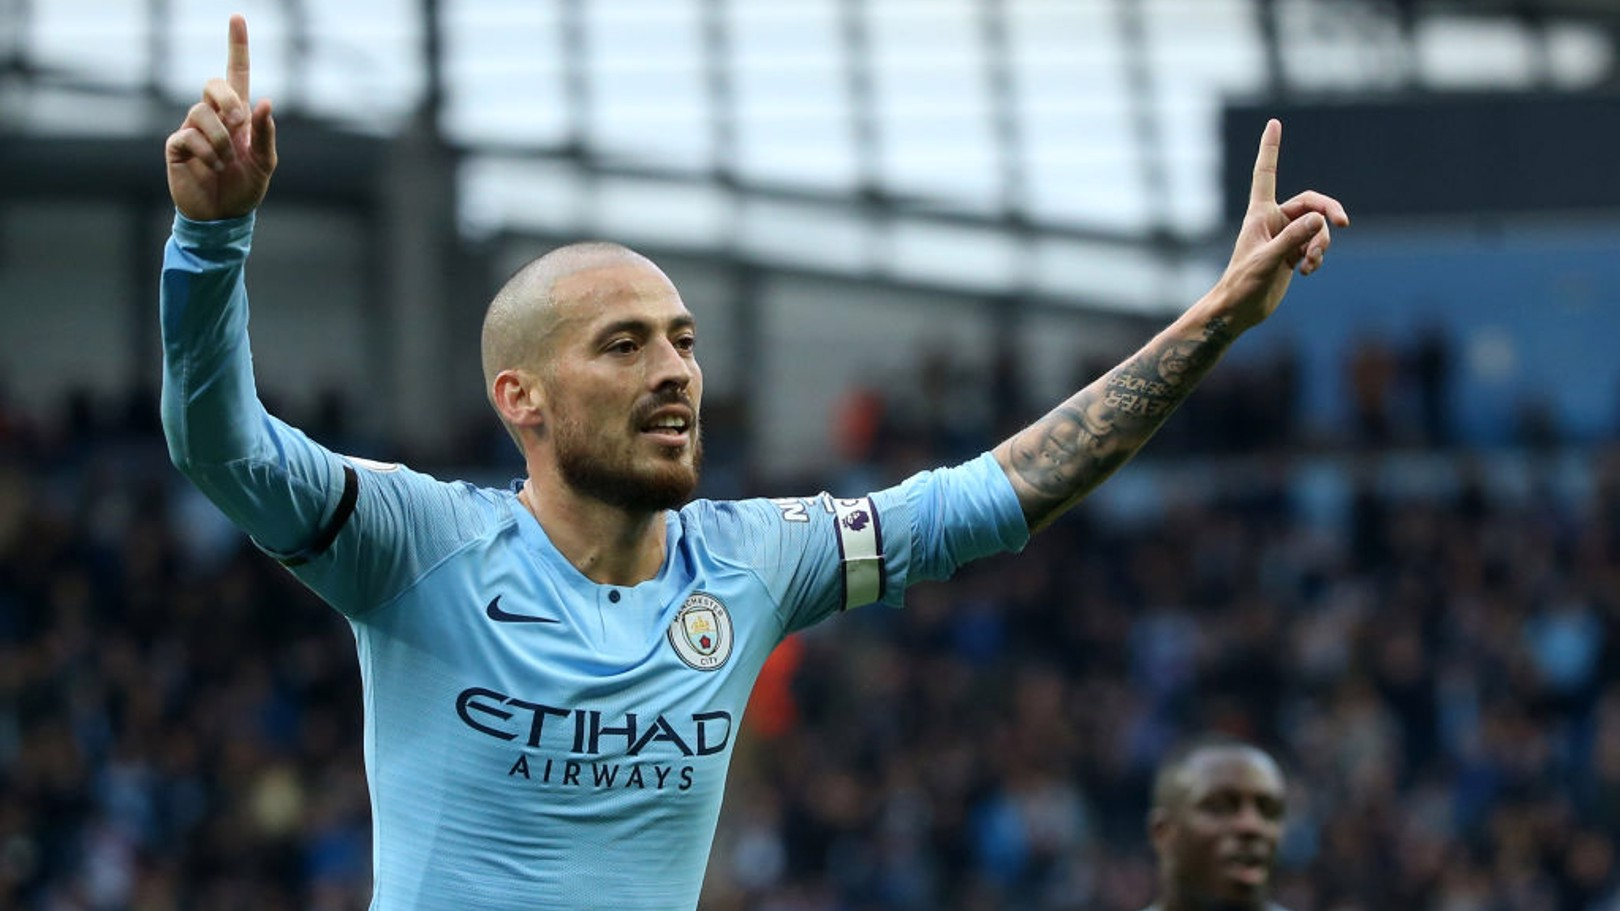 DAVID SILVA. 267 partidos de Premier League con el City.